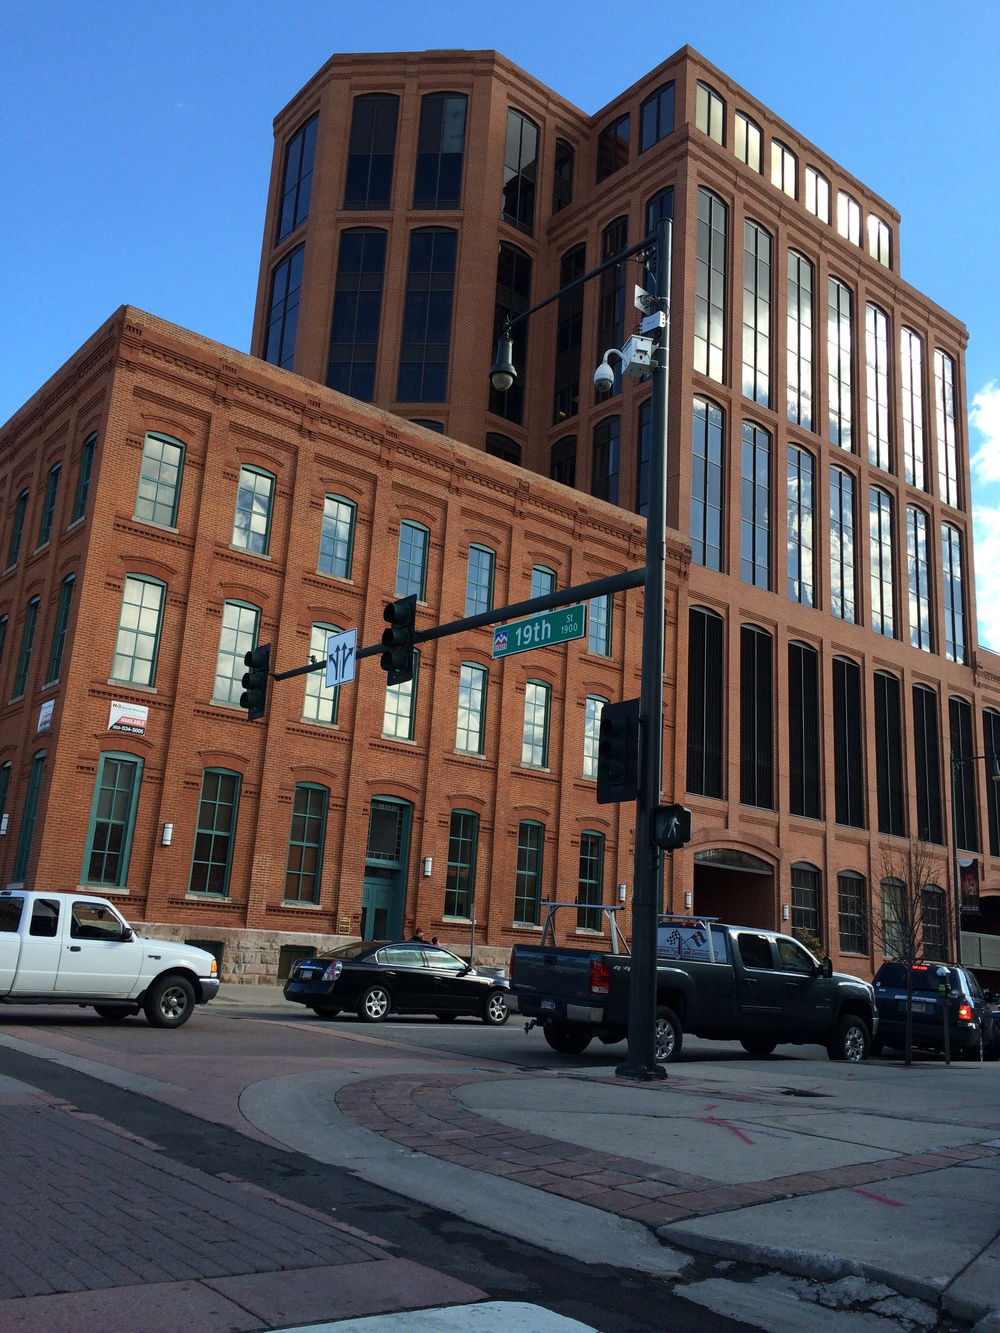 LoDo makes use of the newly finished brick facades. Omaha has a very similar style.